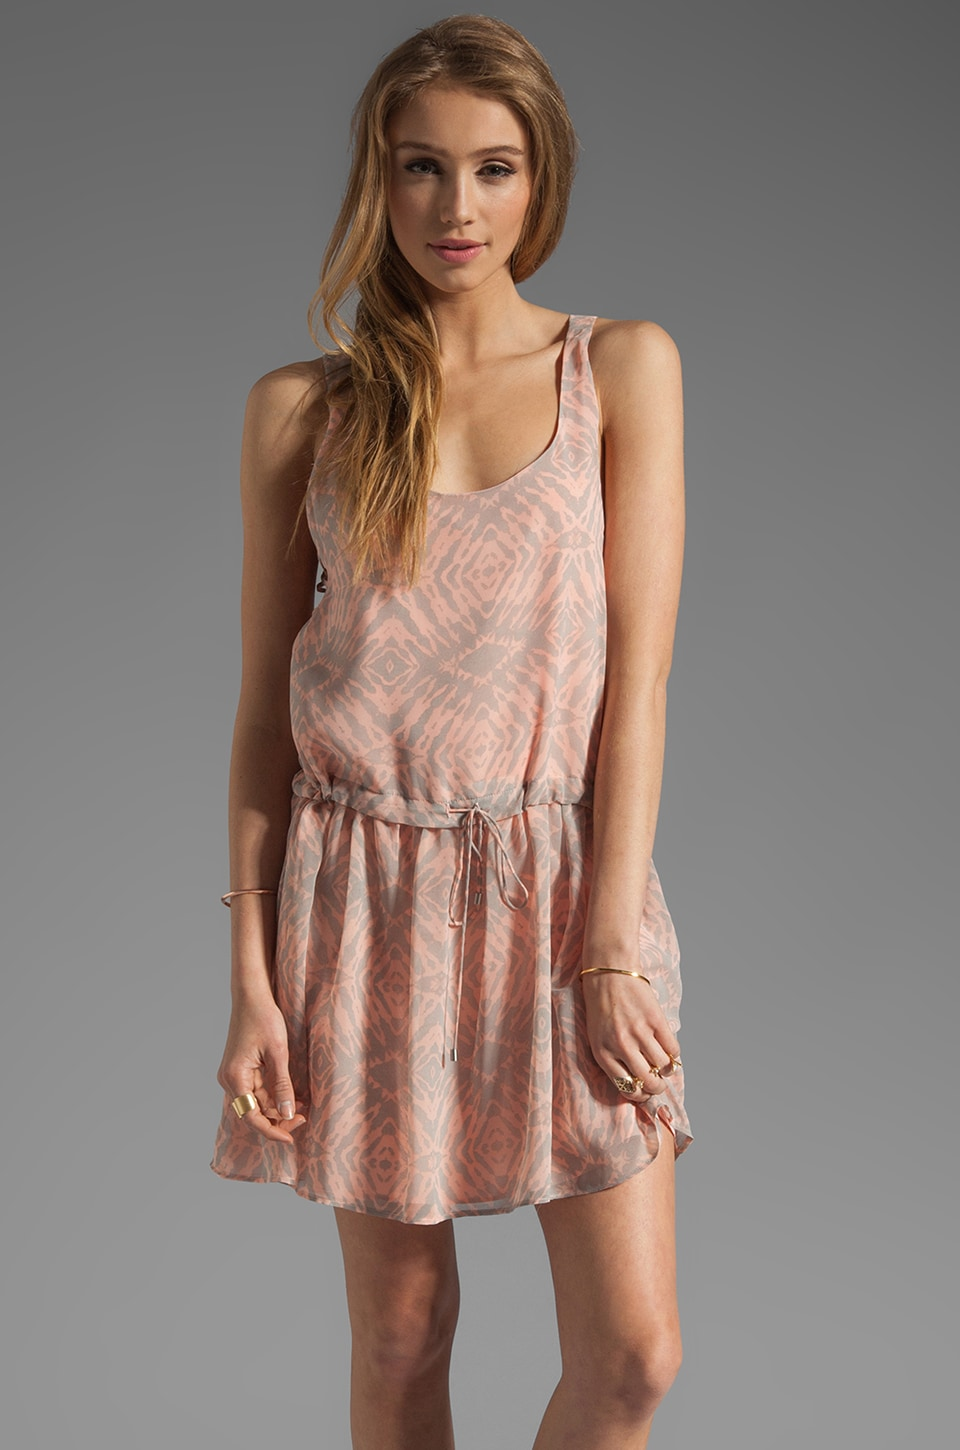 Dolce Vita Betrys Tie Dye Tank Dress in Coral/Grey